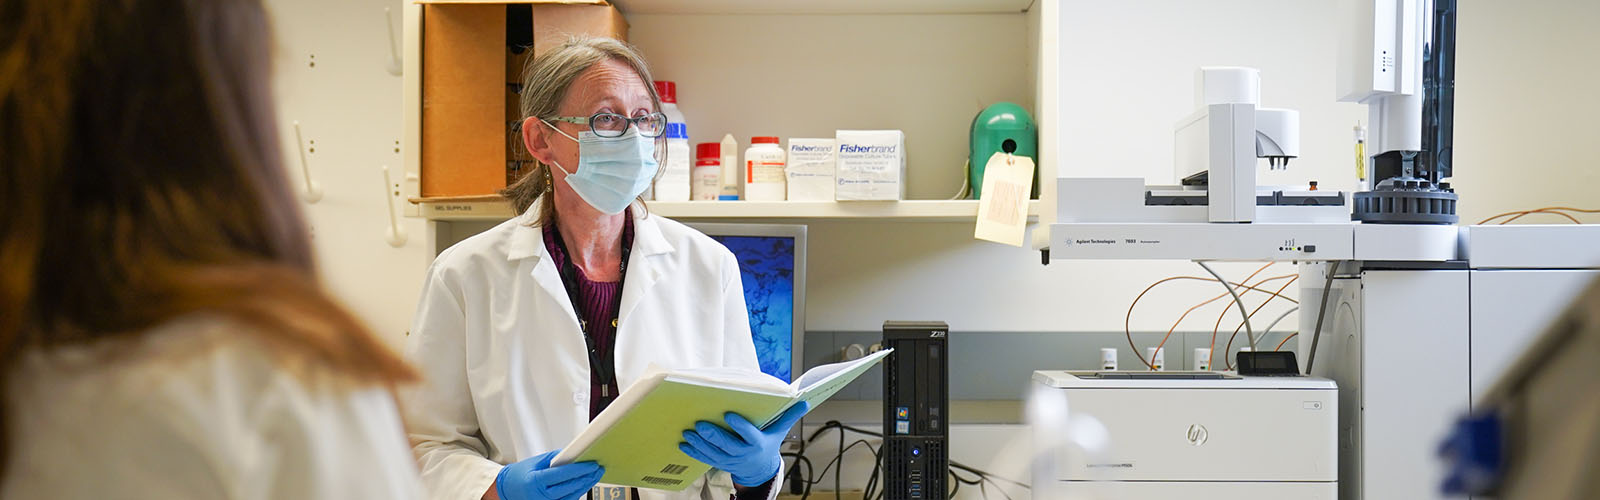 Dr. Anderson in lab wearing mask.